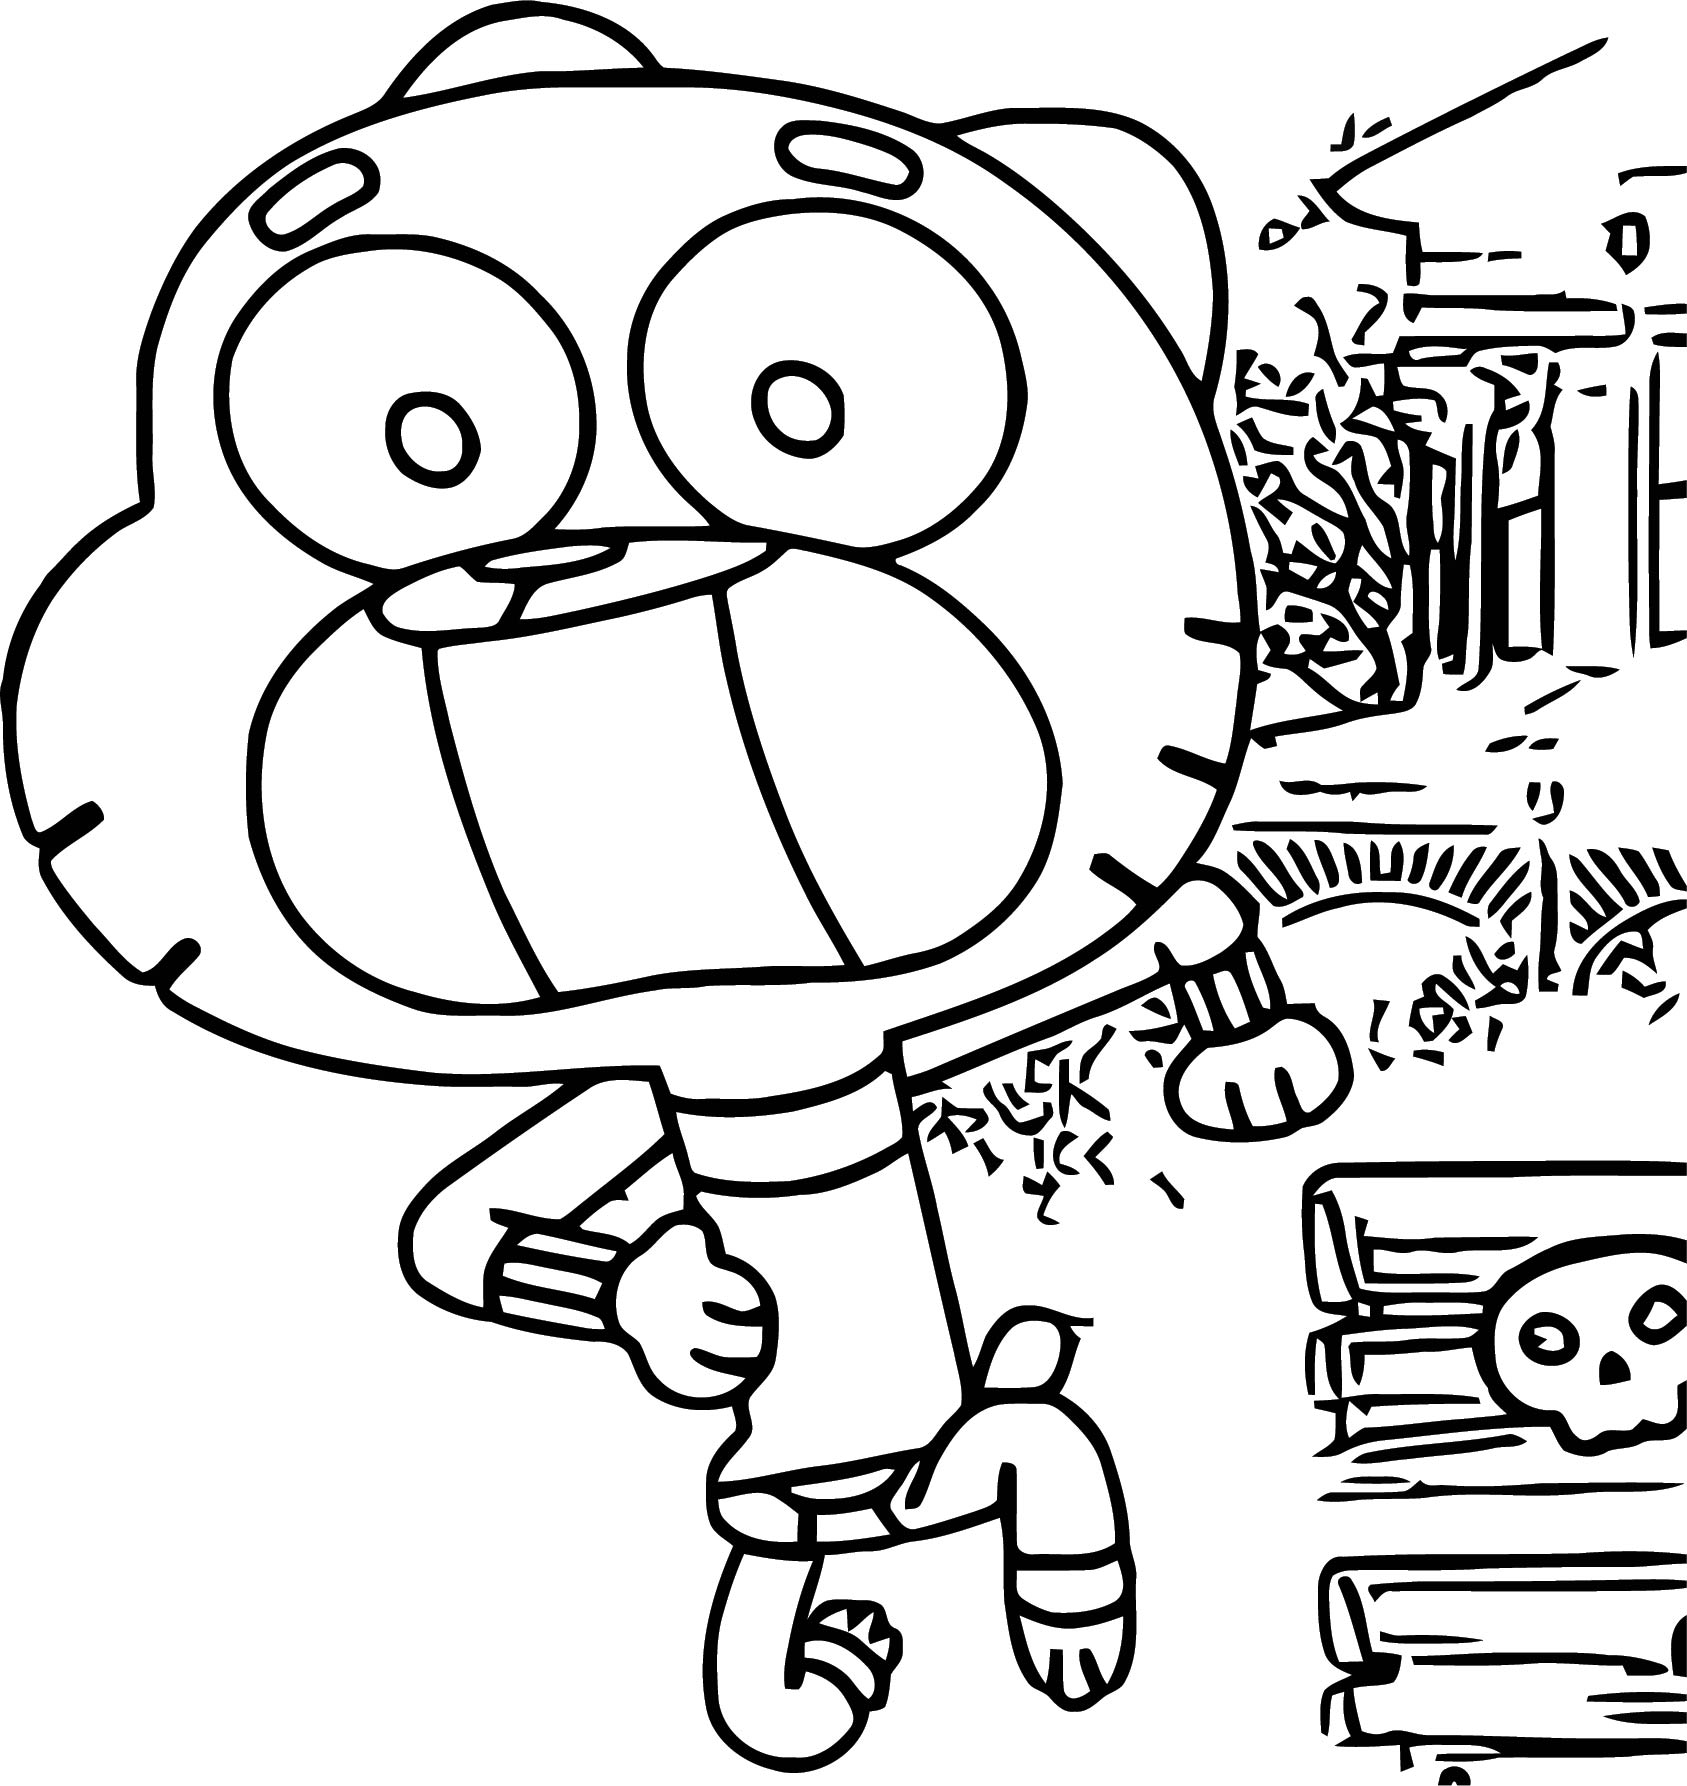 Gumball Run Coloring Page